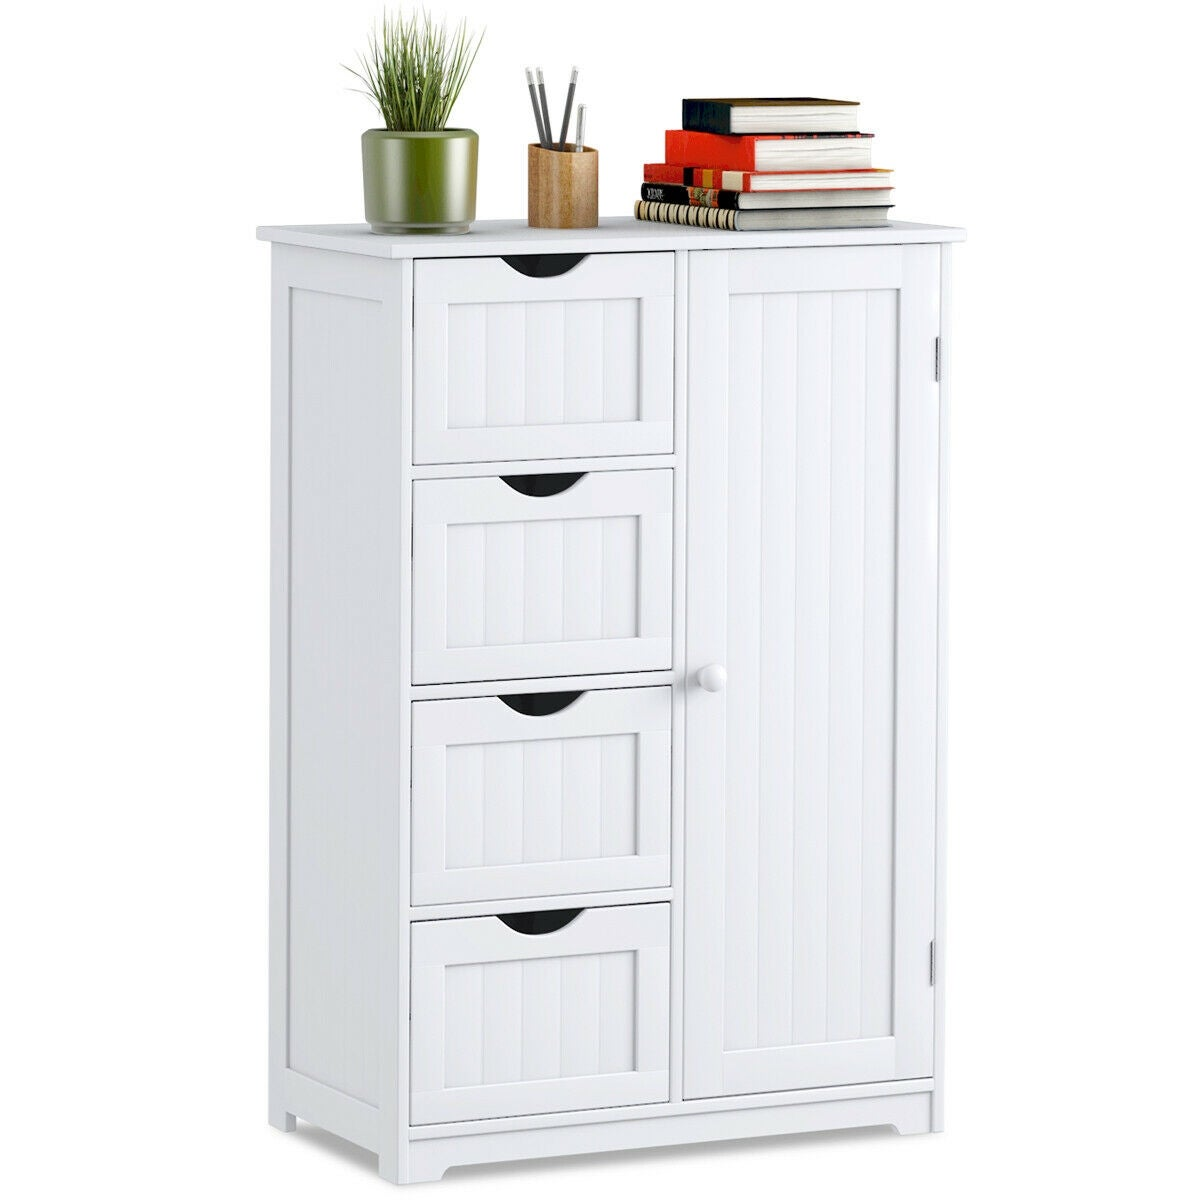 Costway Wooden 4 Drawer Bathroom